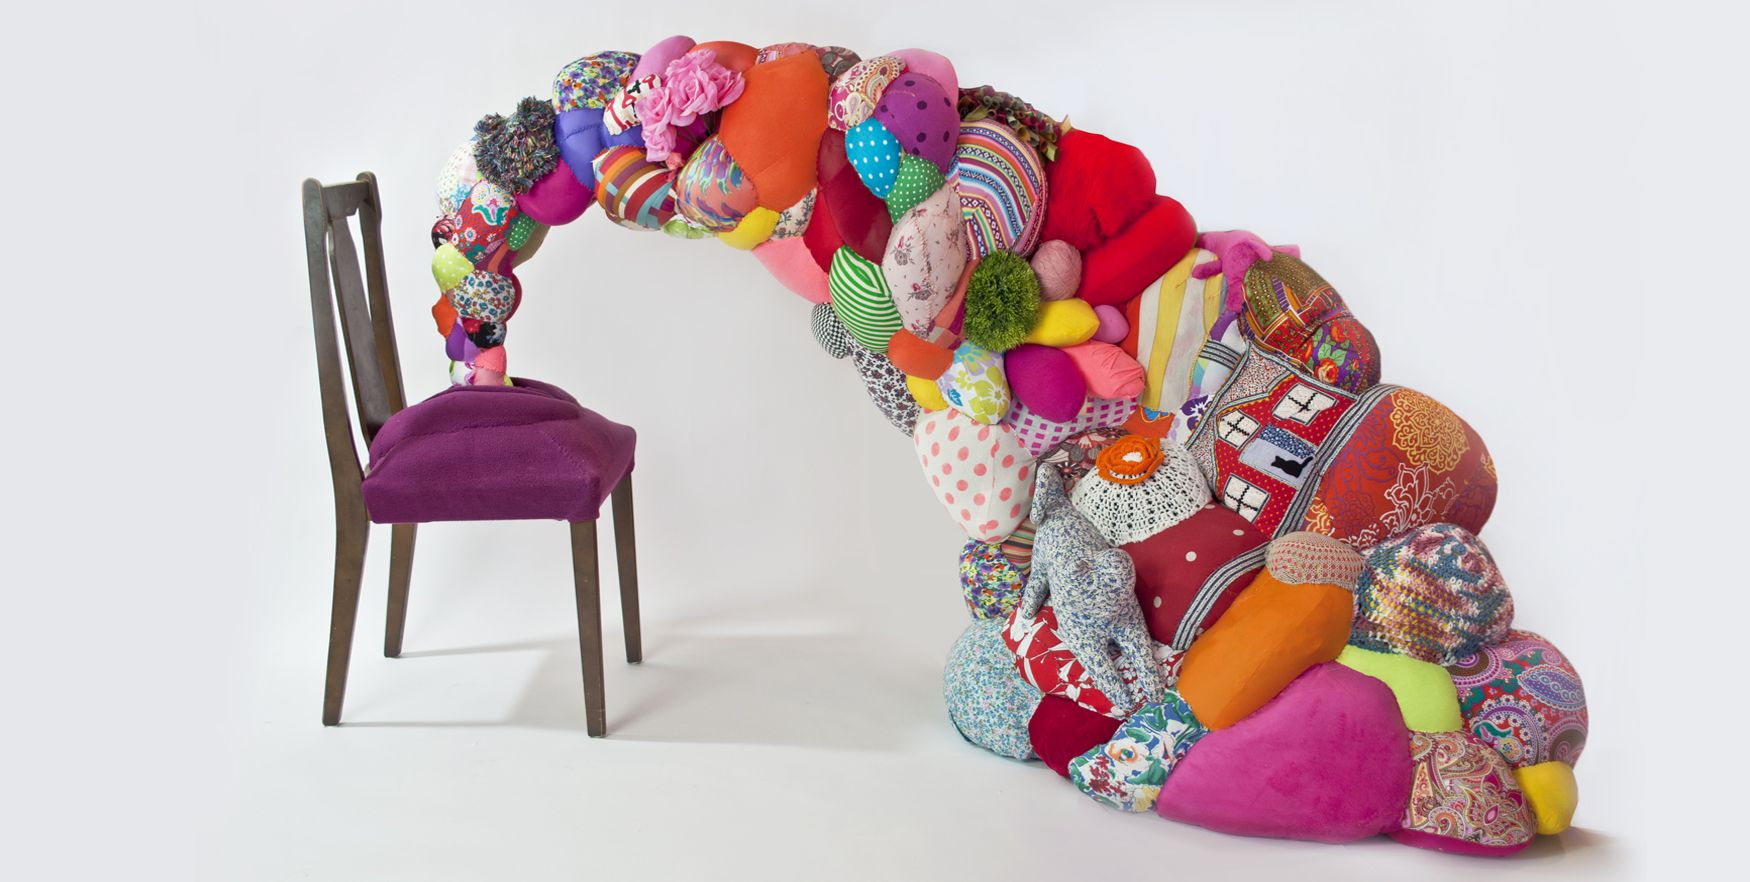 Sculpture Recycled Toys